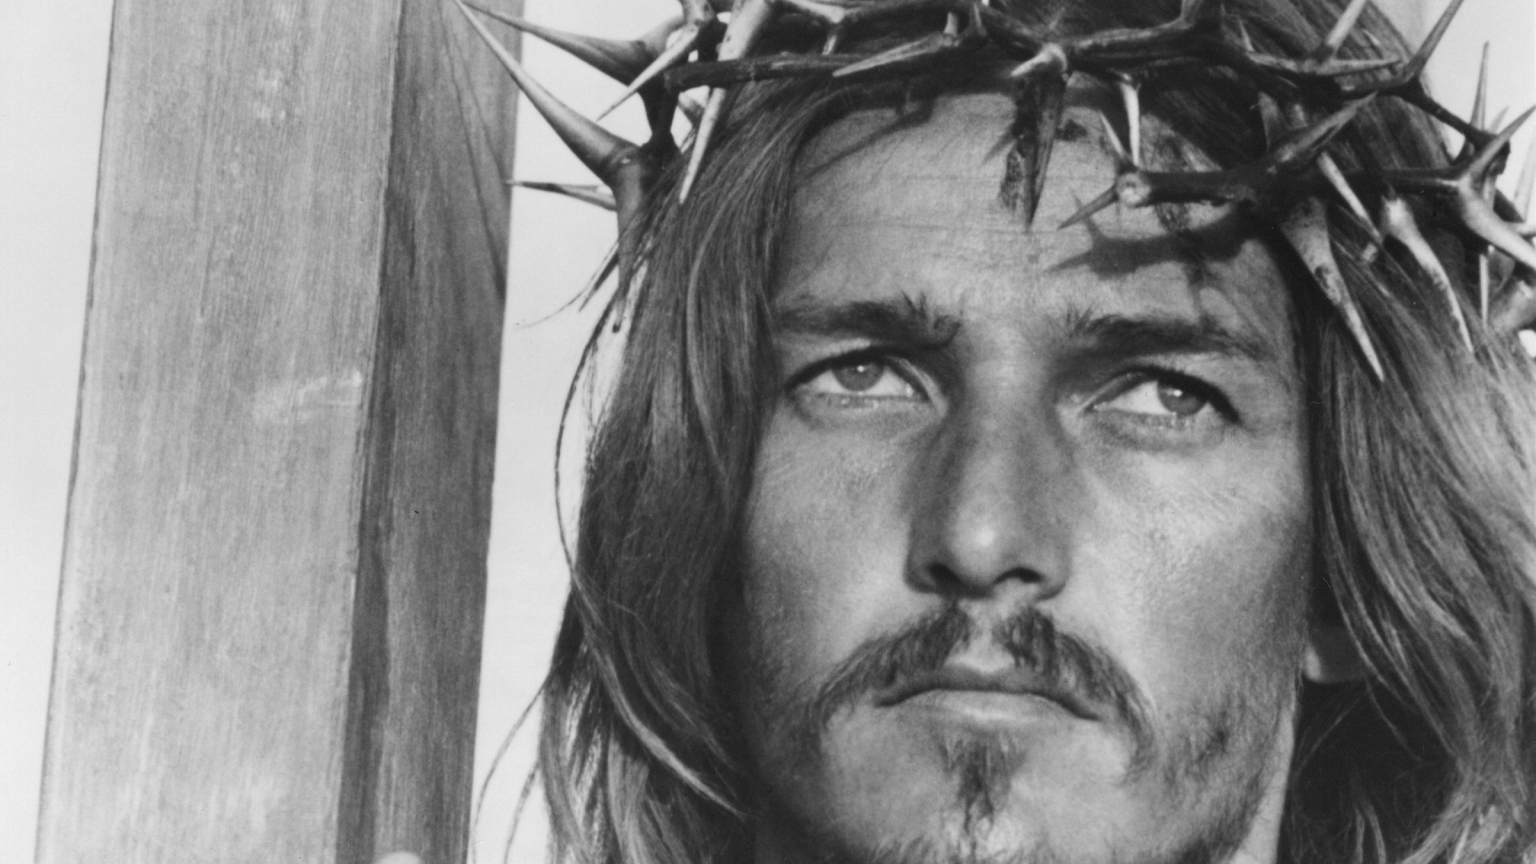 Free Download Jesus Christ Black And White Pics Daily Pics Update Hd Wallpapers 2400x1777 For Your Desktop Mobile Tablet Explore 50 Black Jesus Wallpaper Free Free Jesus Pictures Wallpaper